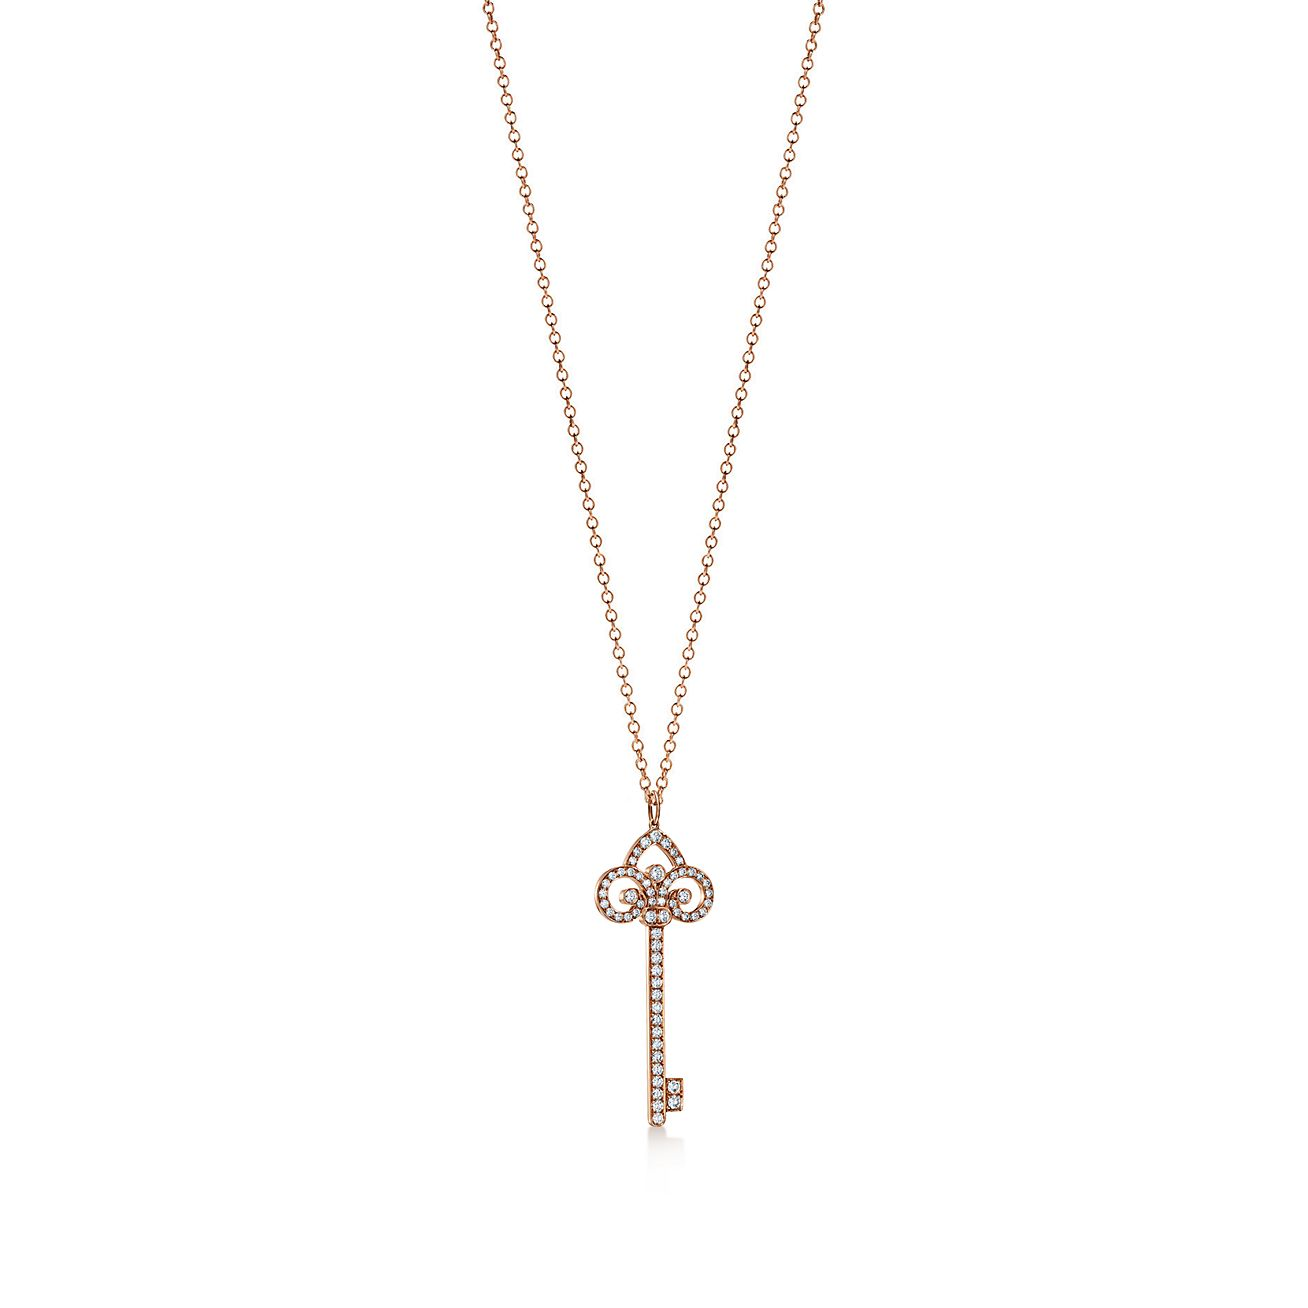 Tiffany keys fleur de lis key pendant in 18k rose gold with diamonds tiffany keysfleur de lis key pendant aloadofball Images